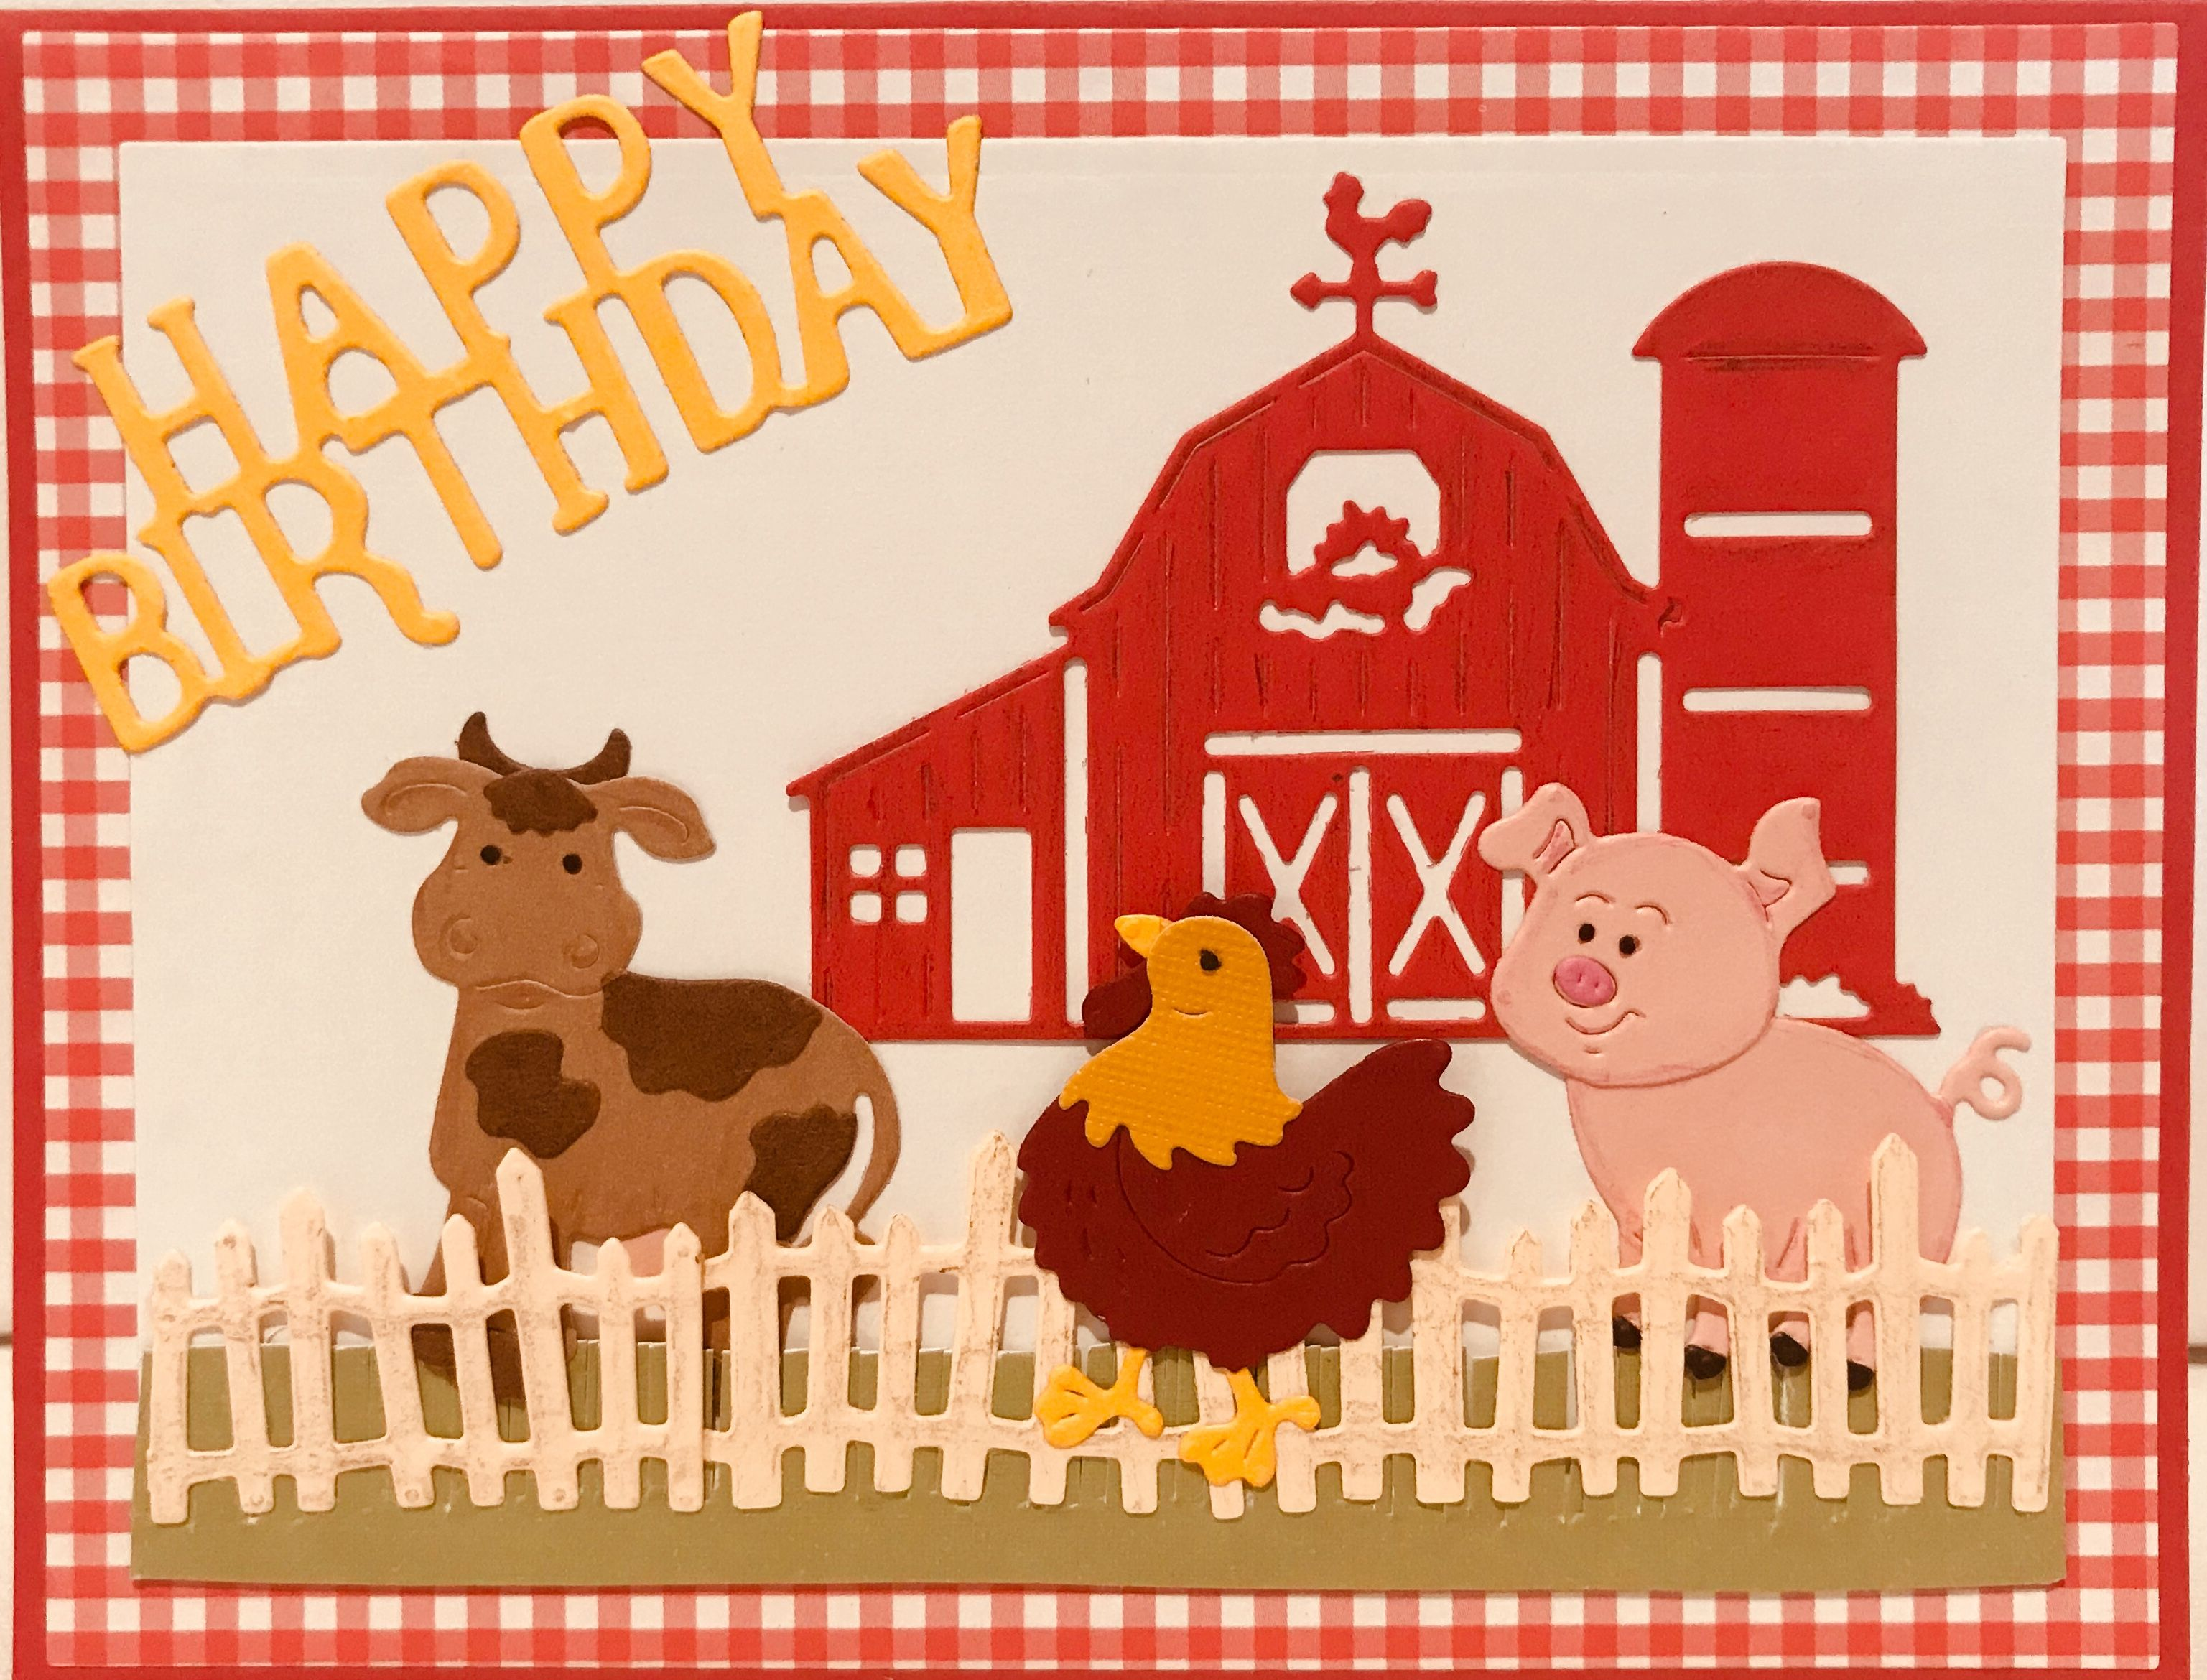 On the farm birthday card homemade cards handmade cards cottage